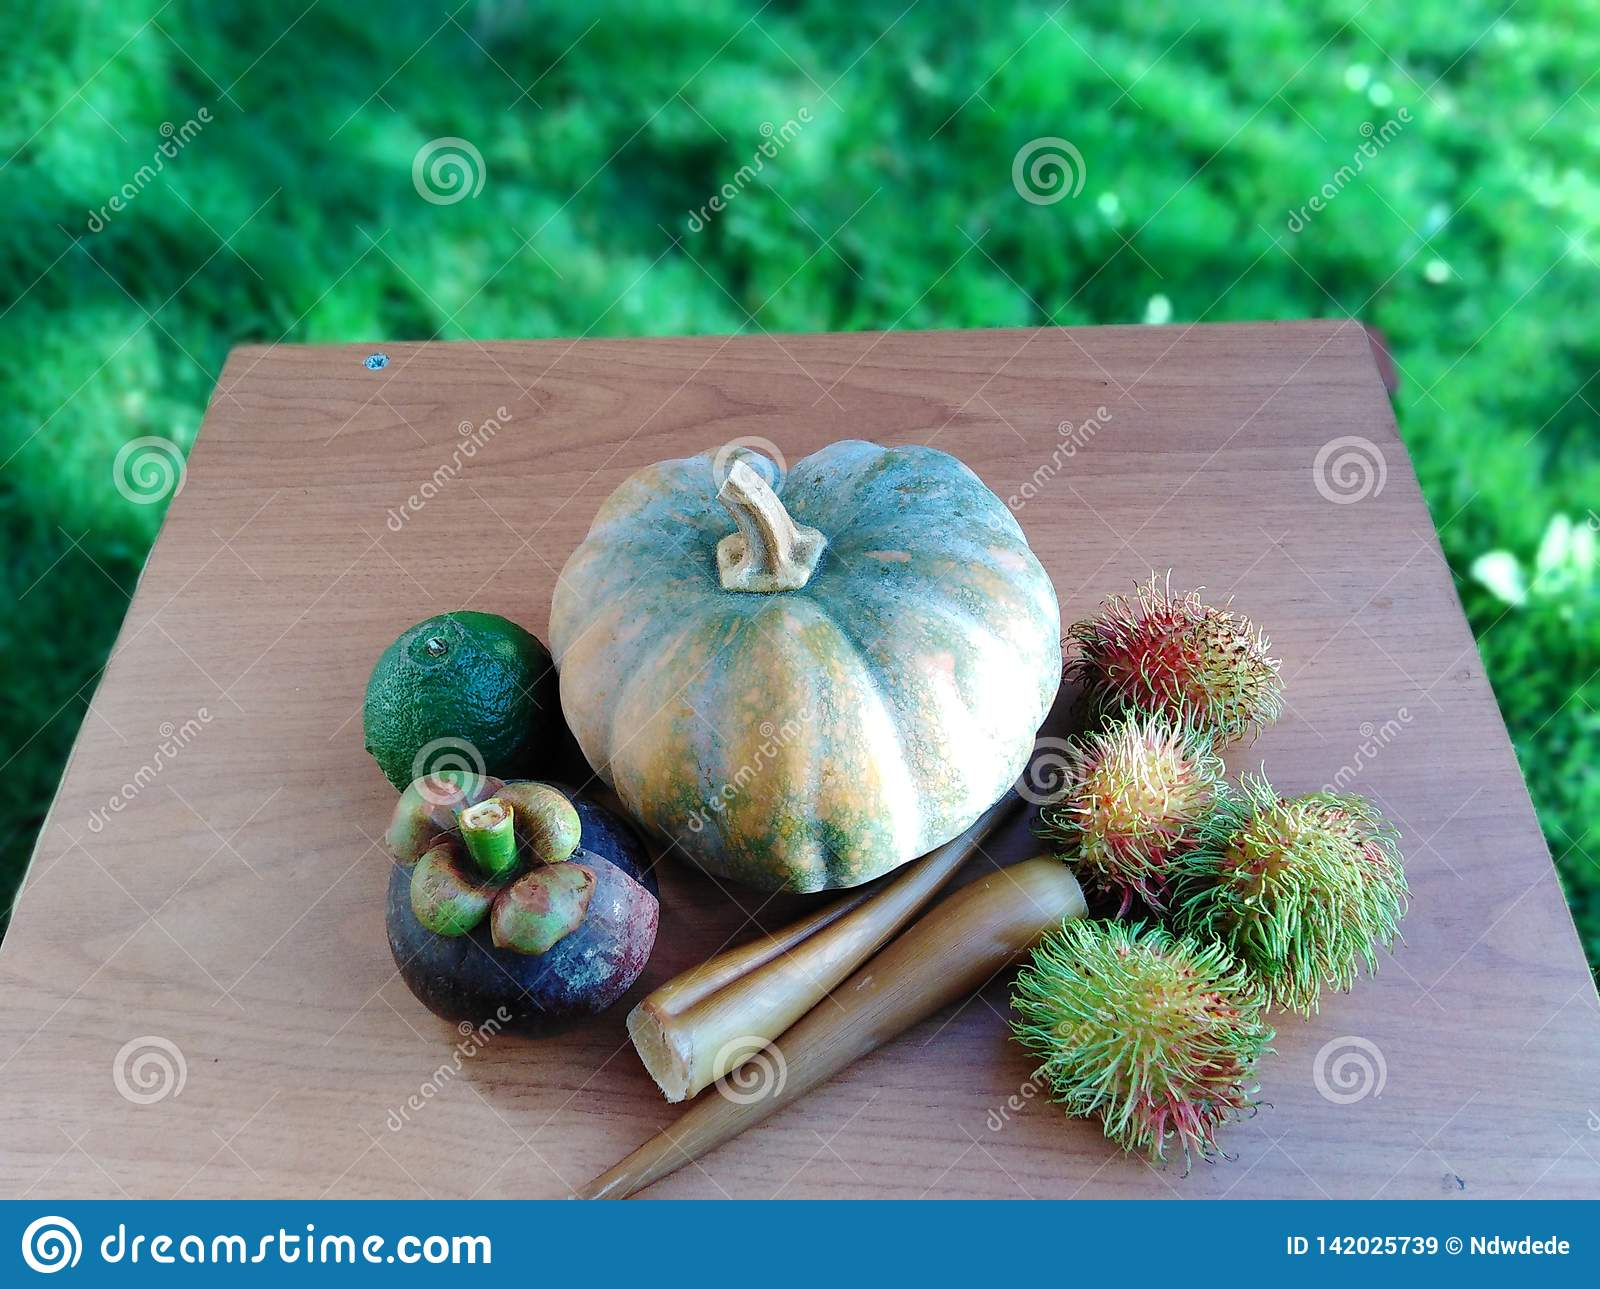 Nicely arranged Fruits and vegetables on table